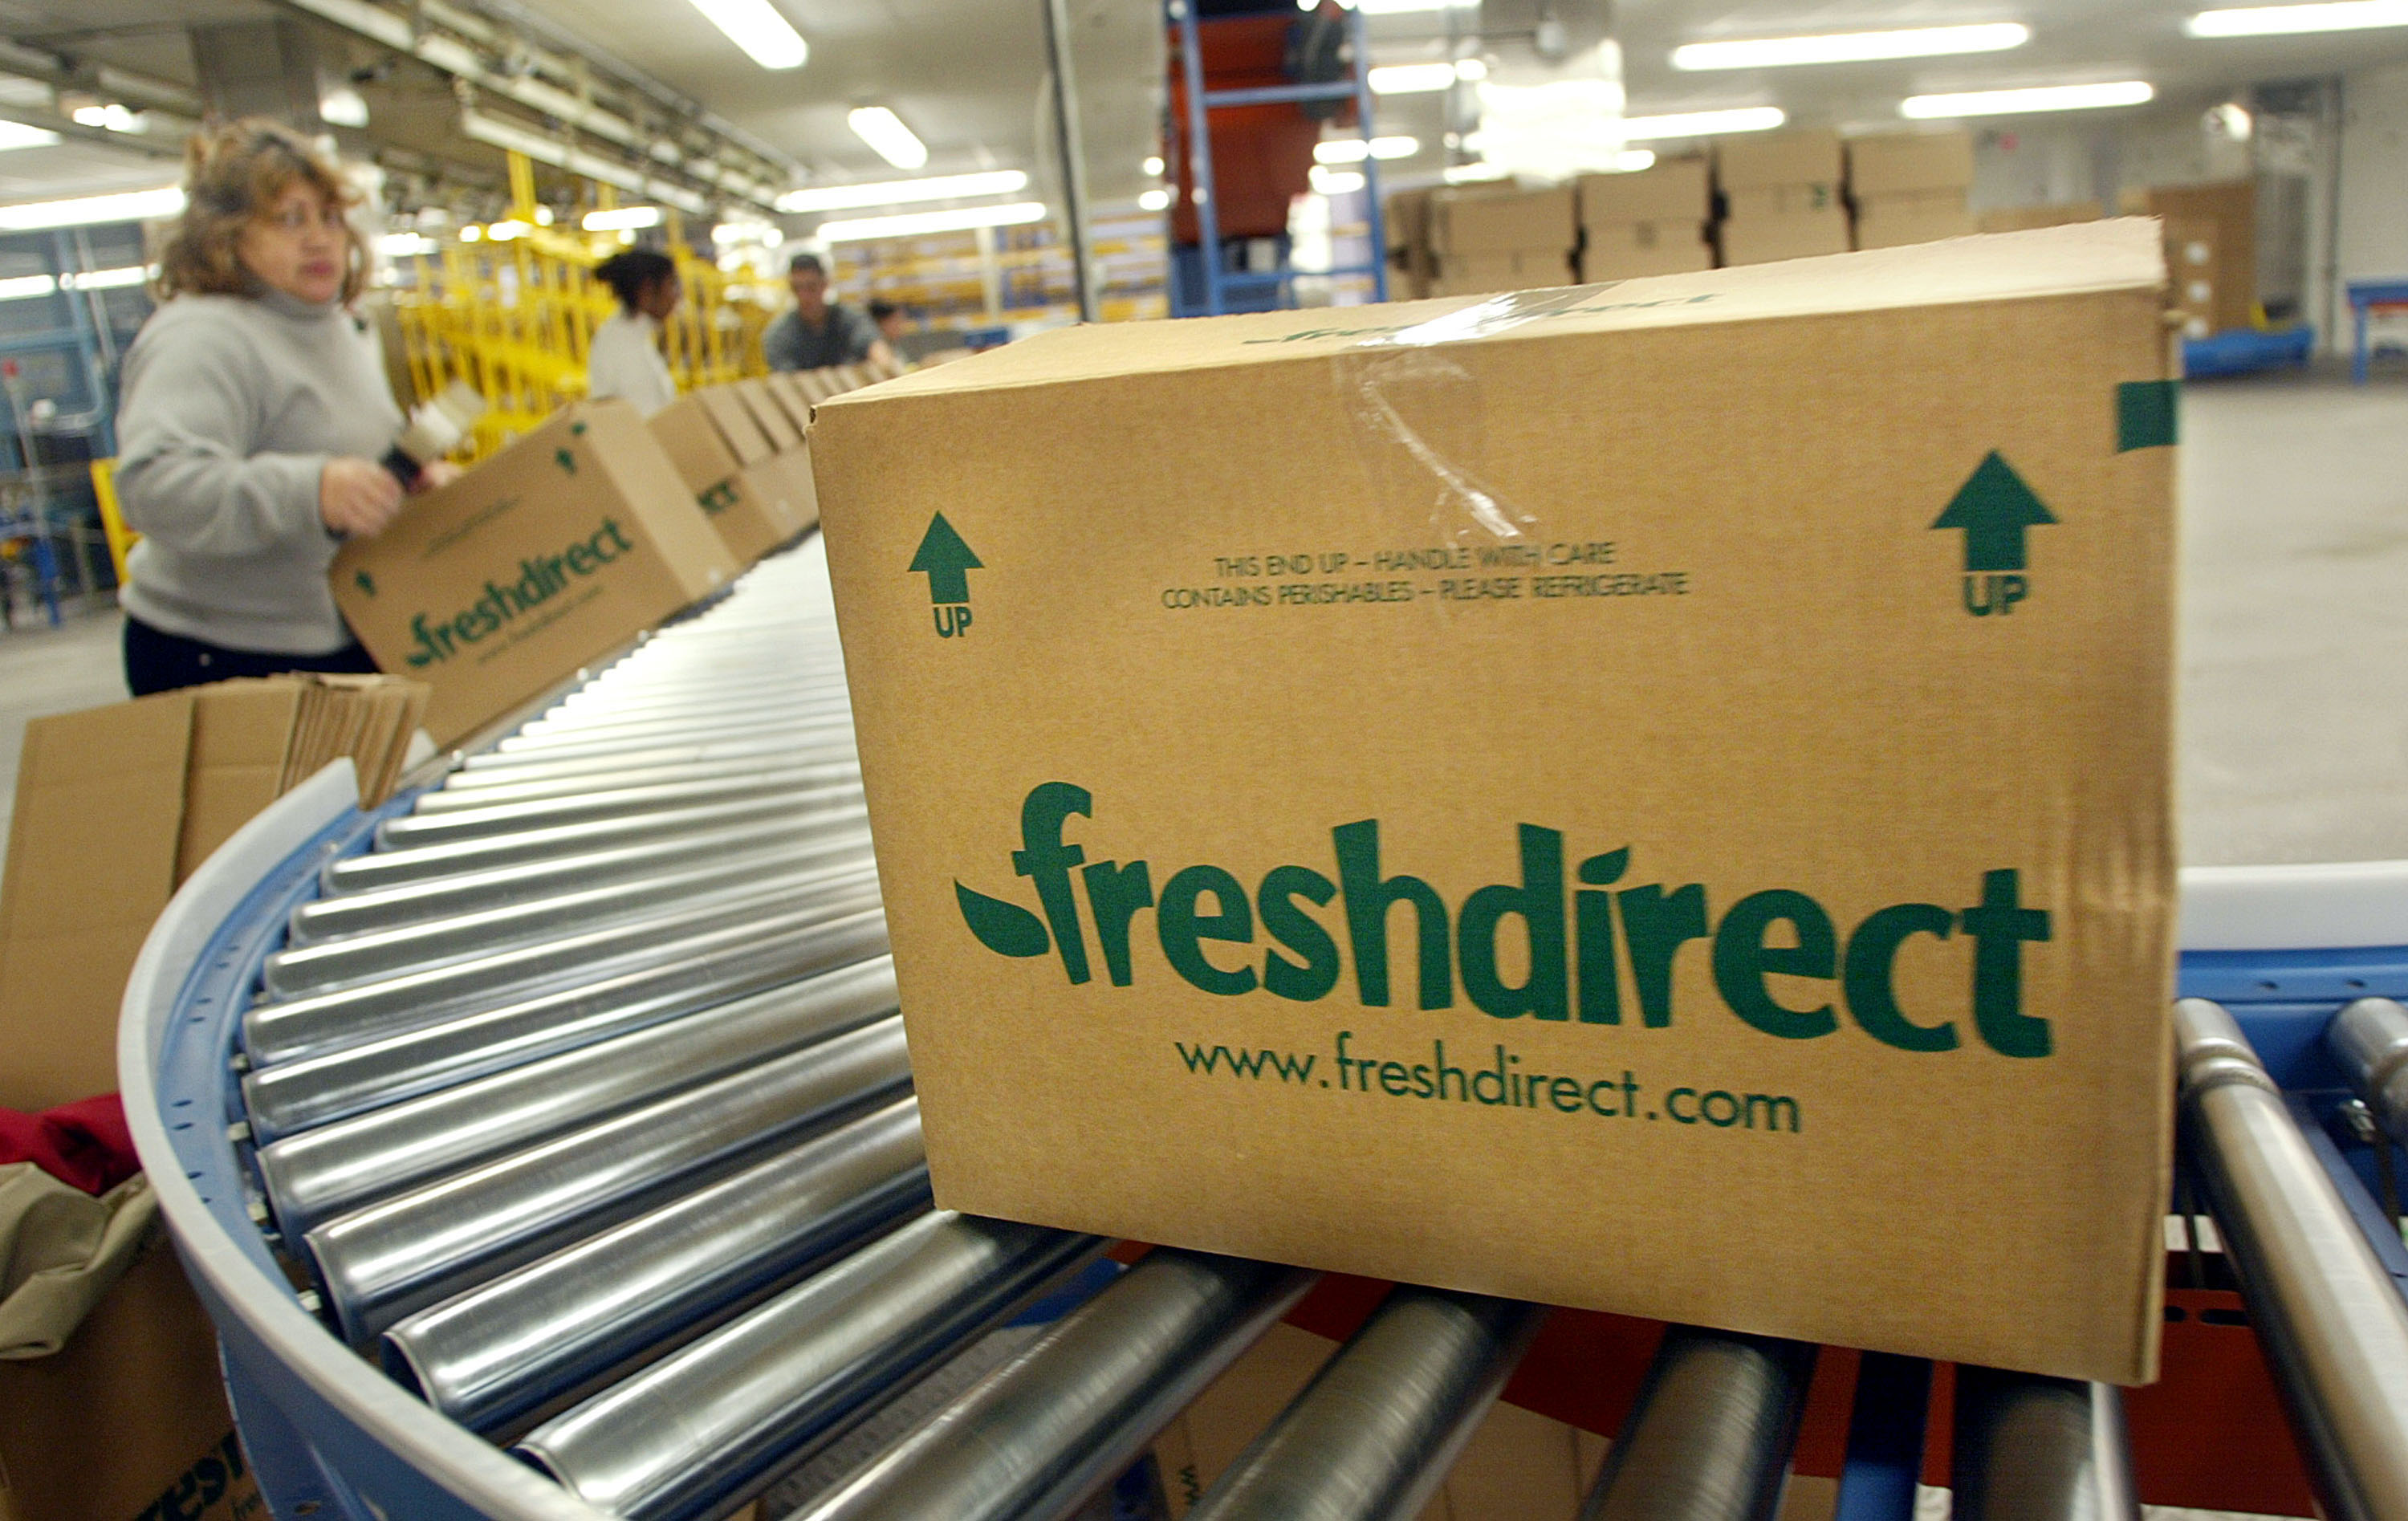 FreshDirect dominates grocery delivery in New York  Now it